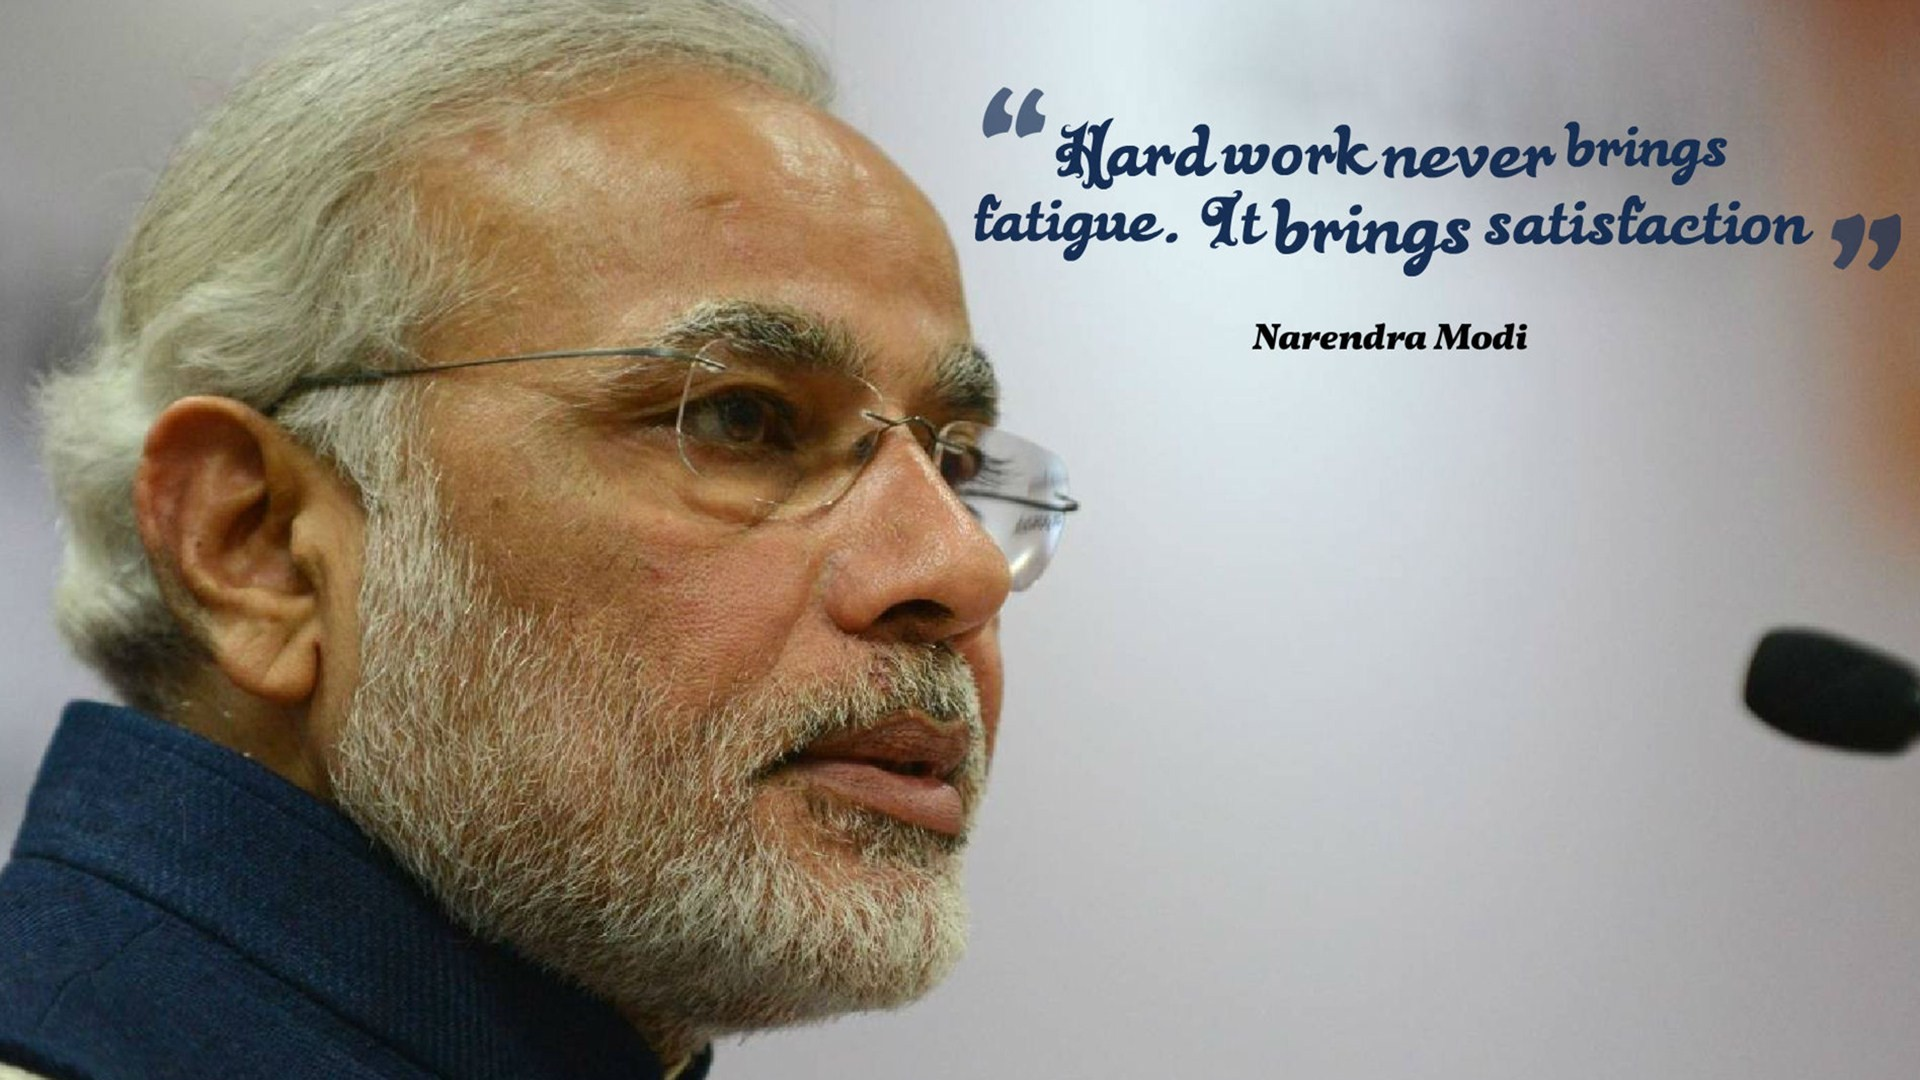 Narendra modi good quotes wallpaper